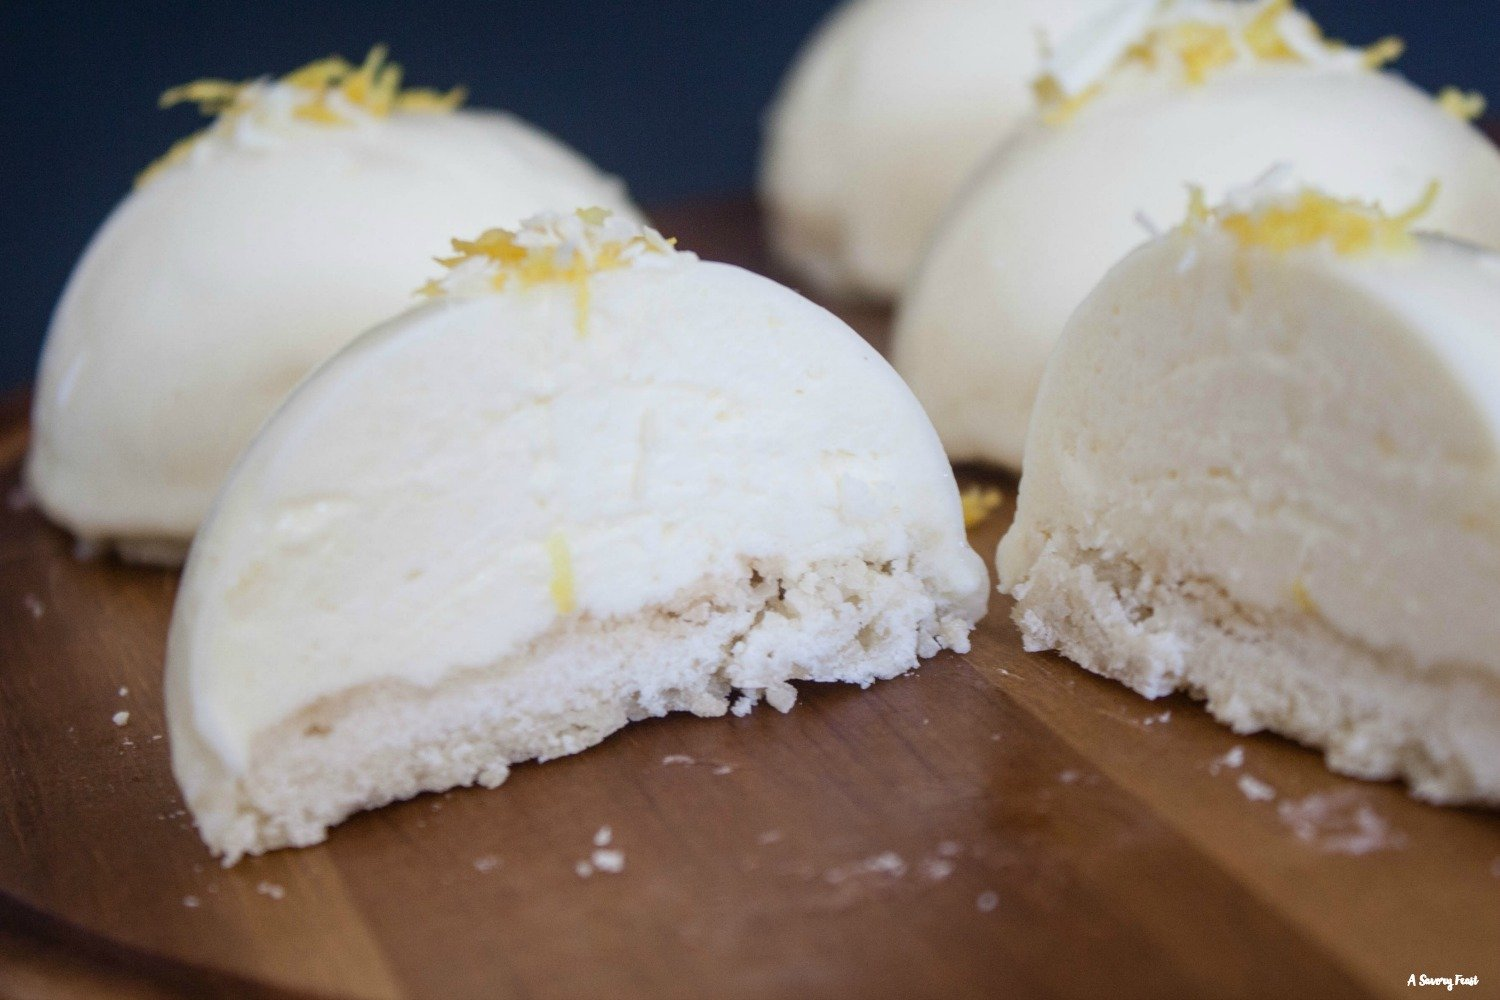 Show off your baking skills with these Mini Lemon Mousse Cakes.